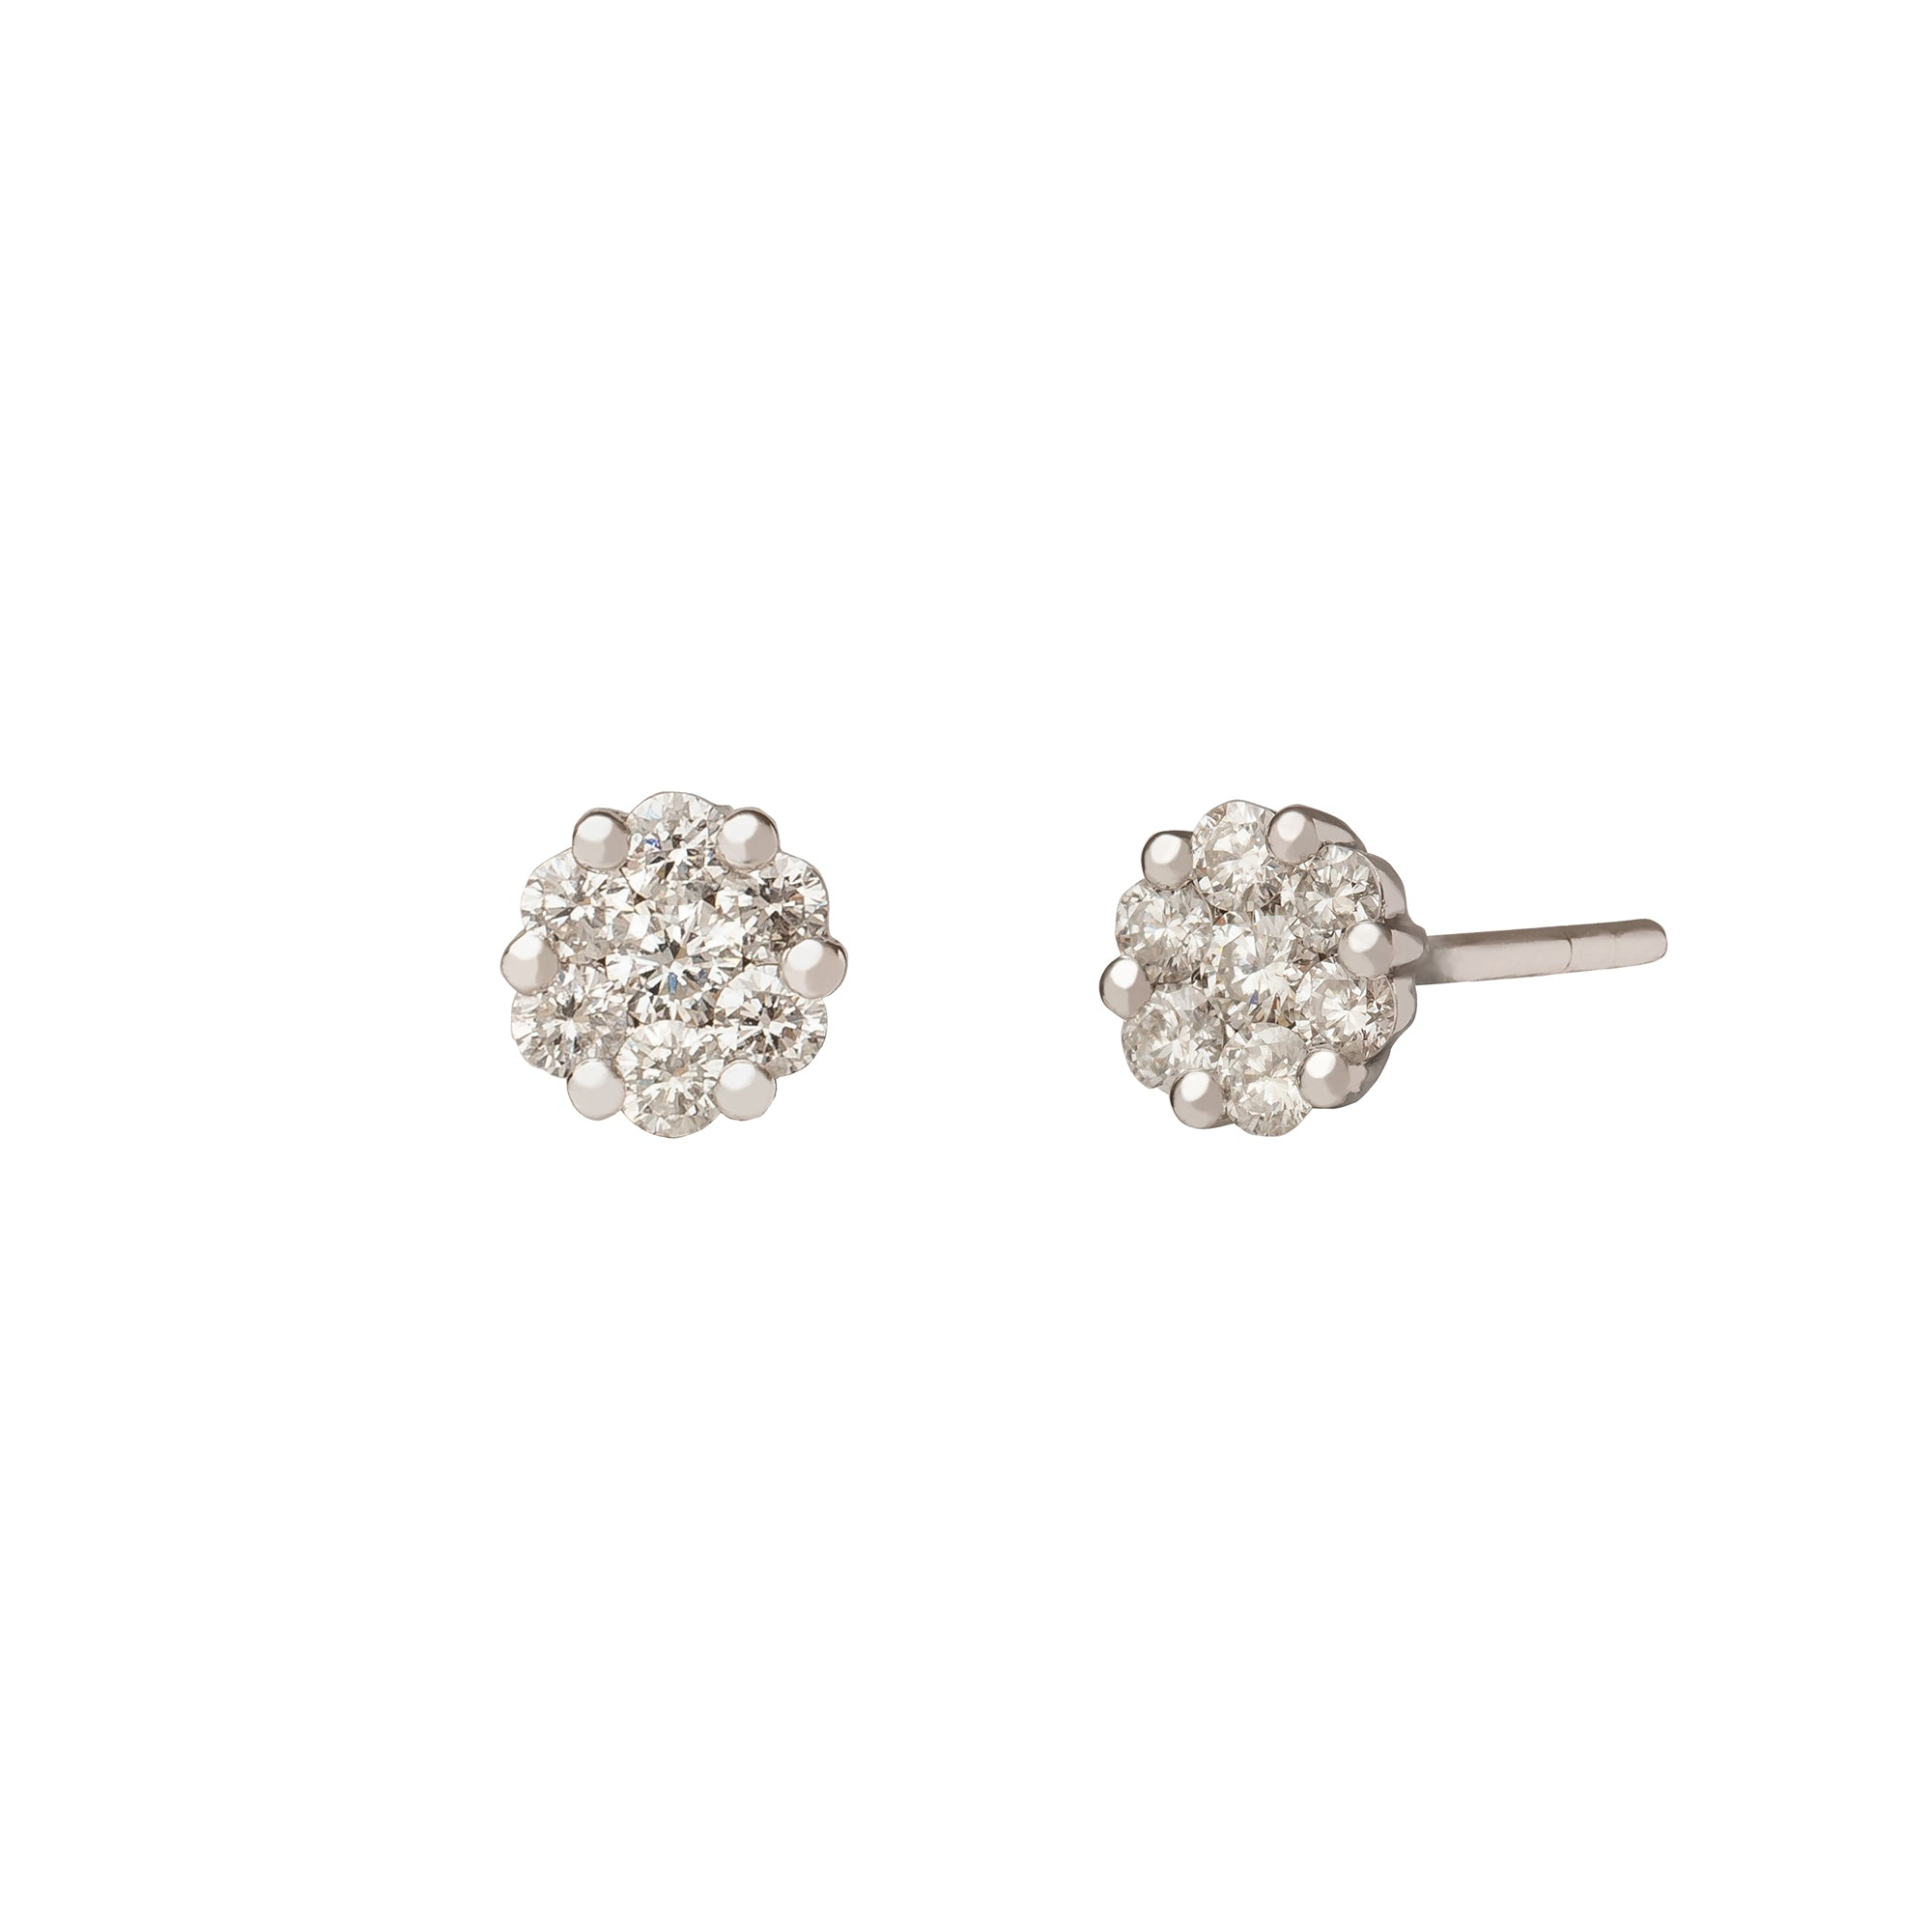 Small Cluster Diamond Stud Earring - Rosa de la Cruz - Earrings | Broken English Jewelry